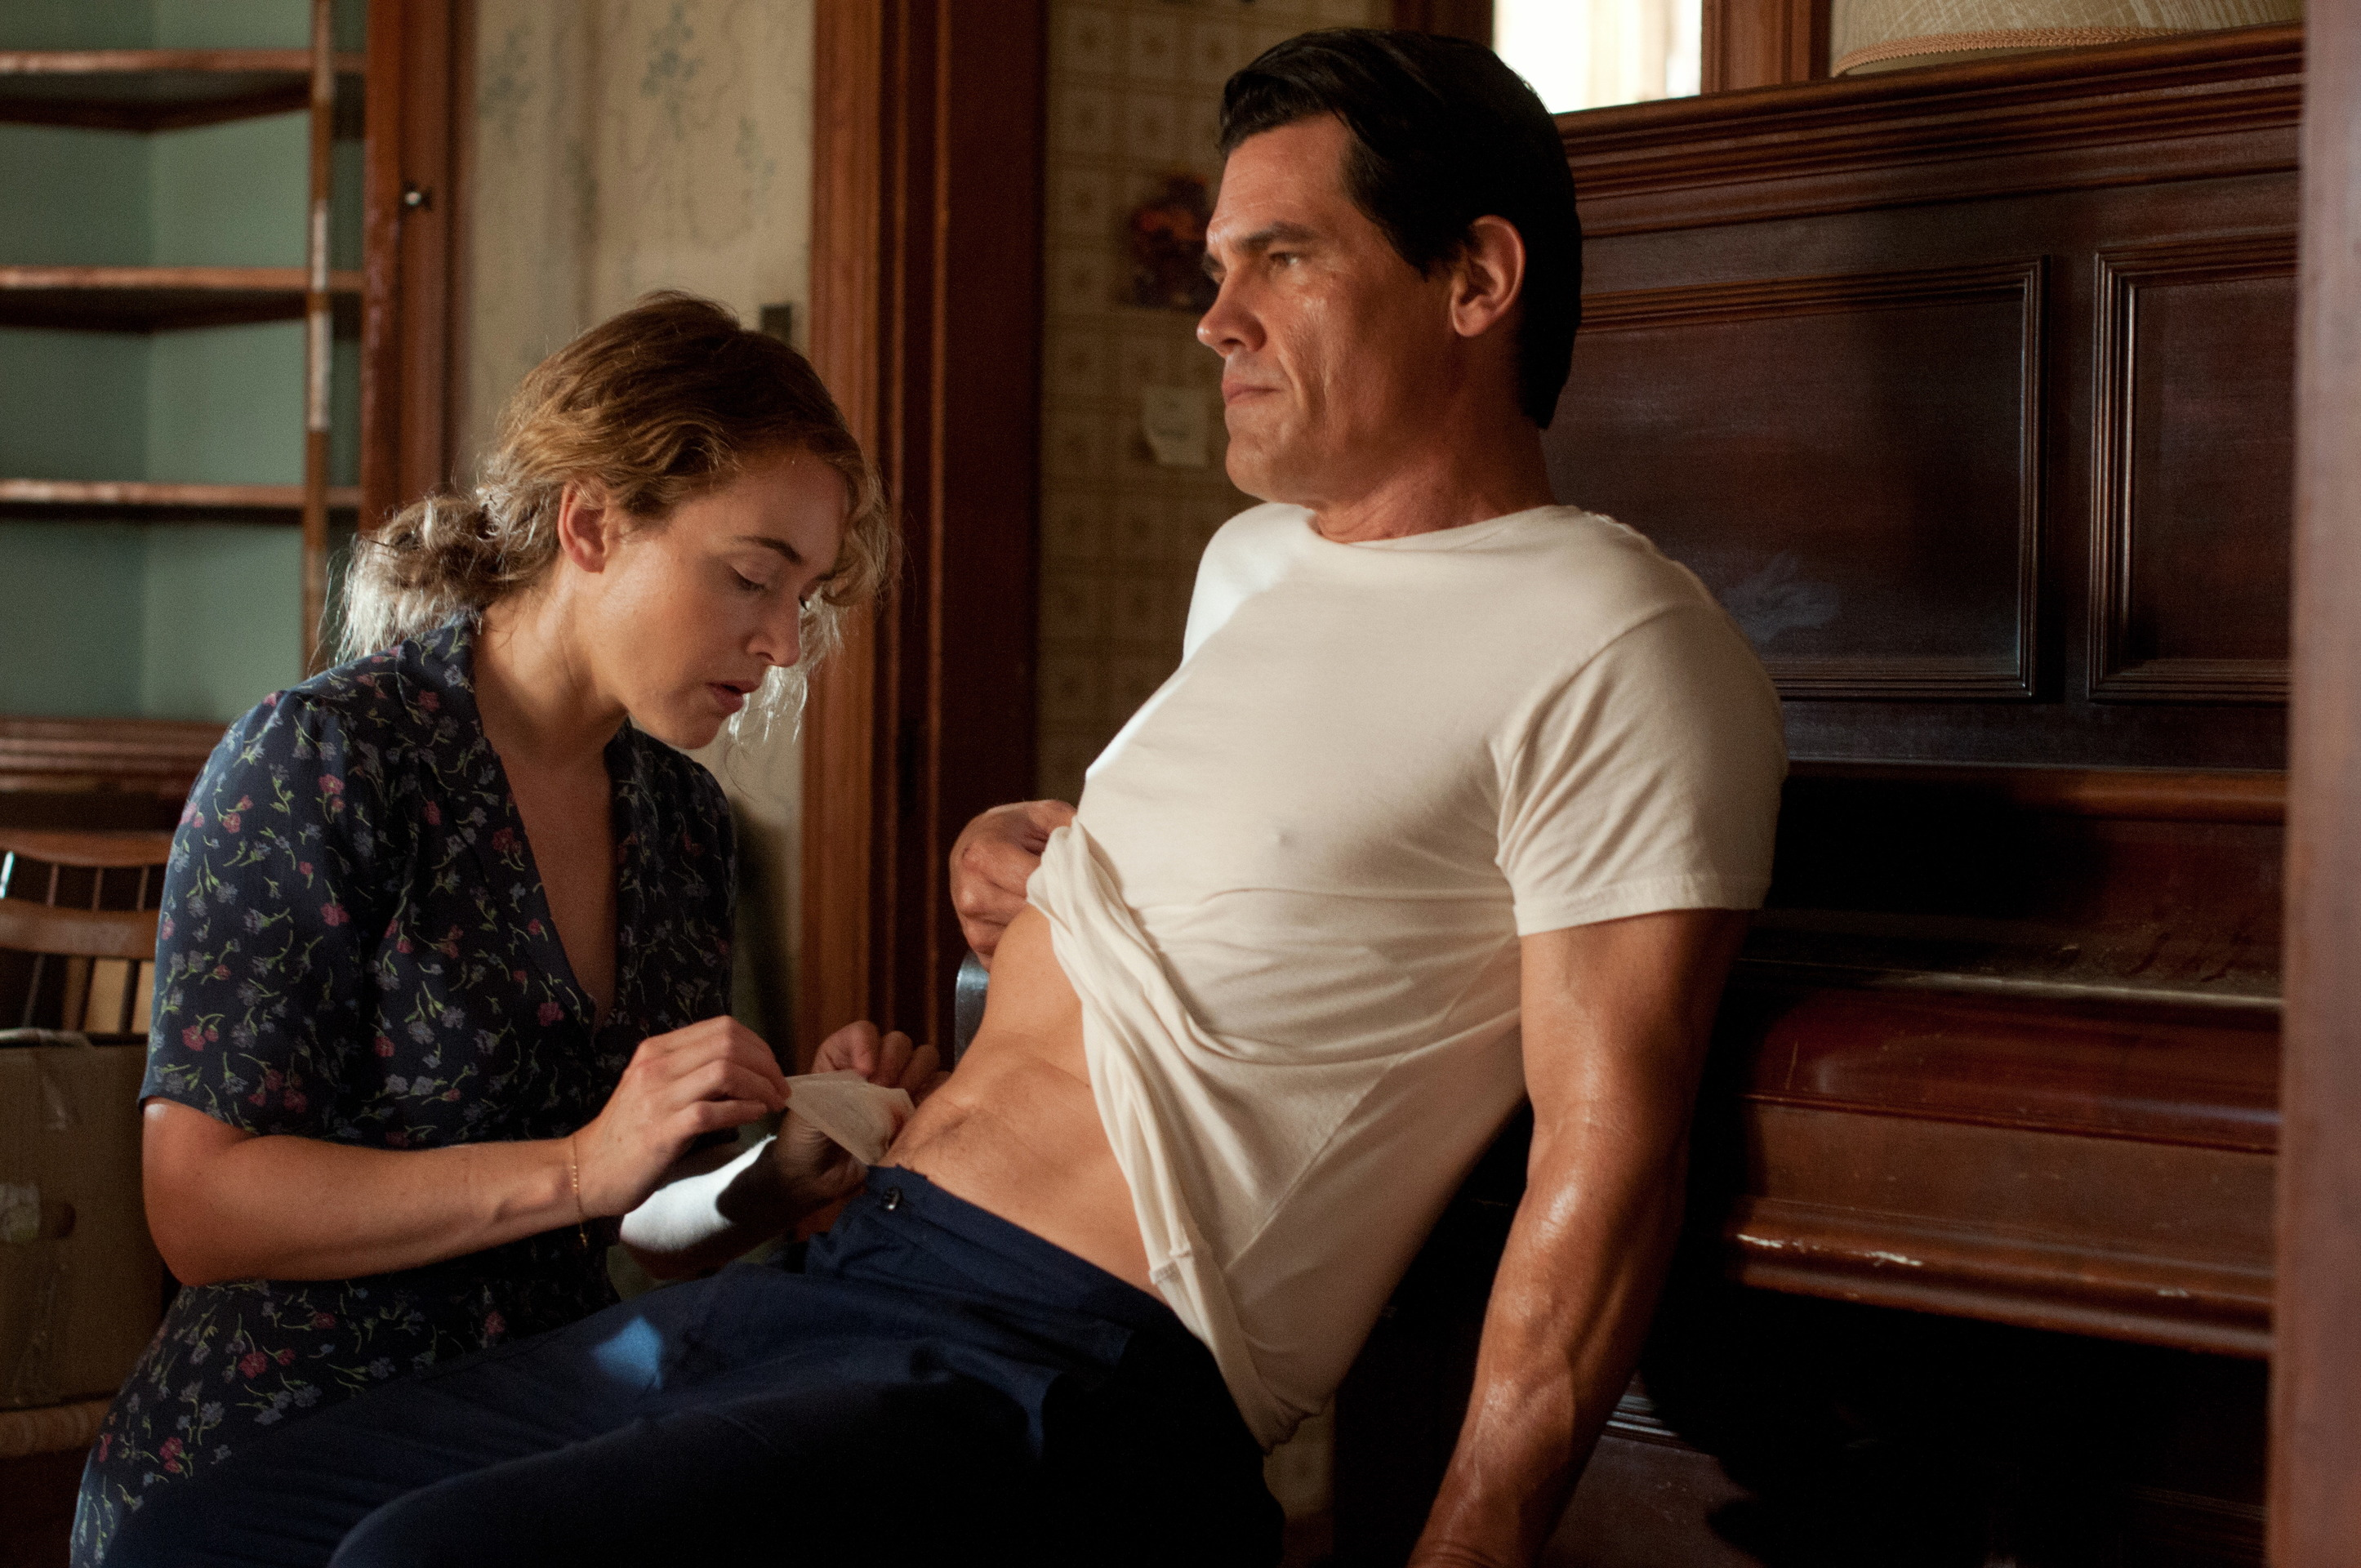 Labor Day Blu Ray Review Rezension Kritik Josh Brolin Kate Winslet